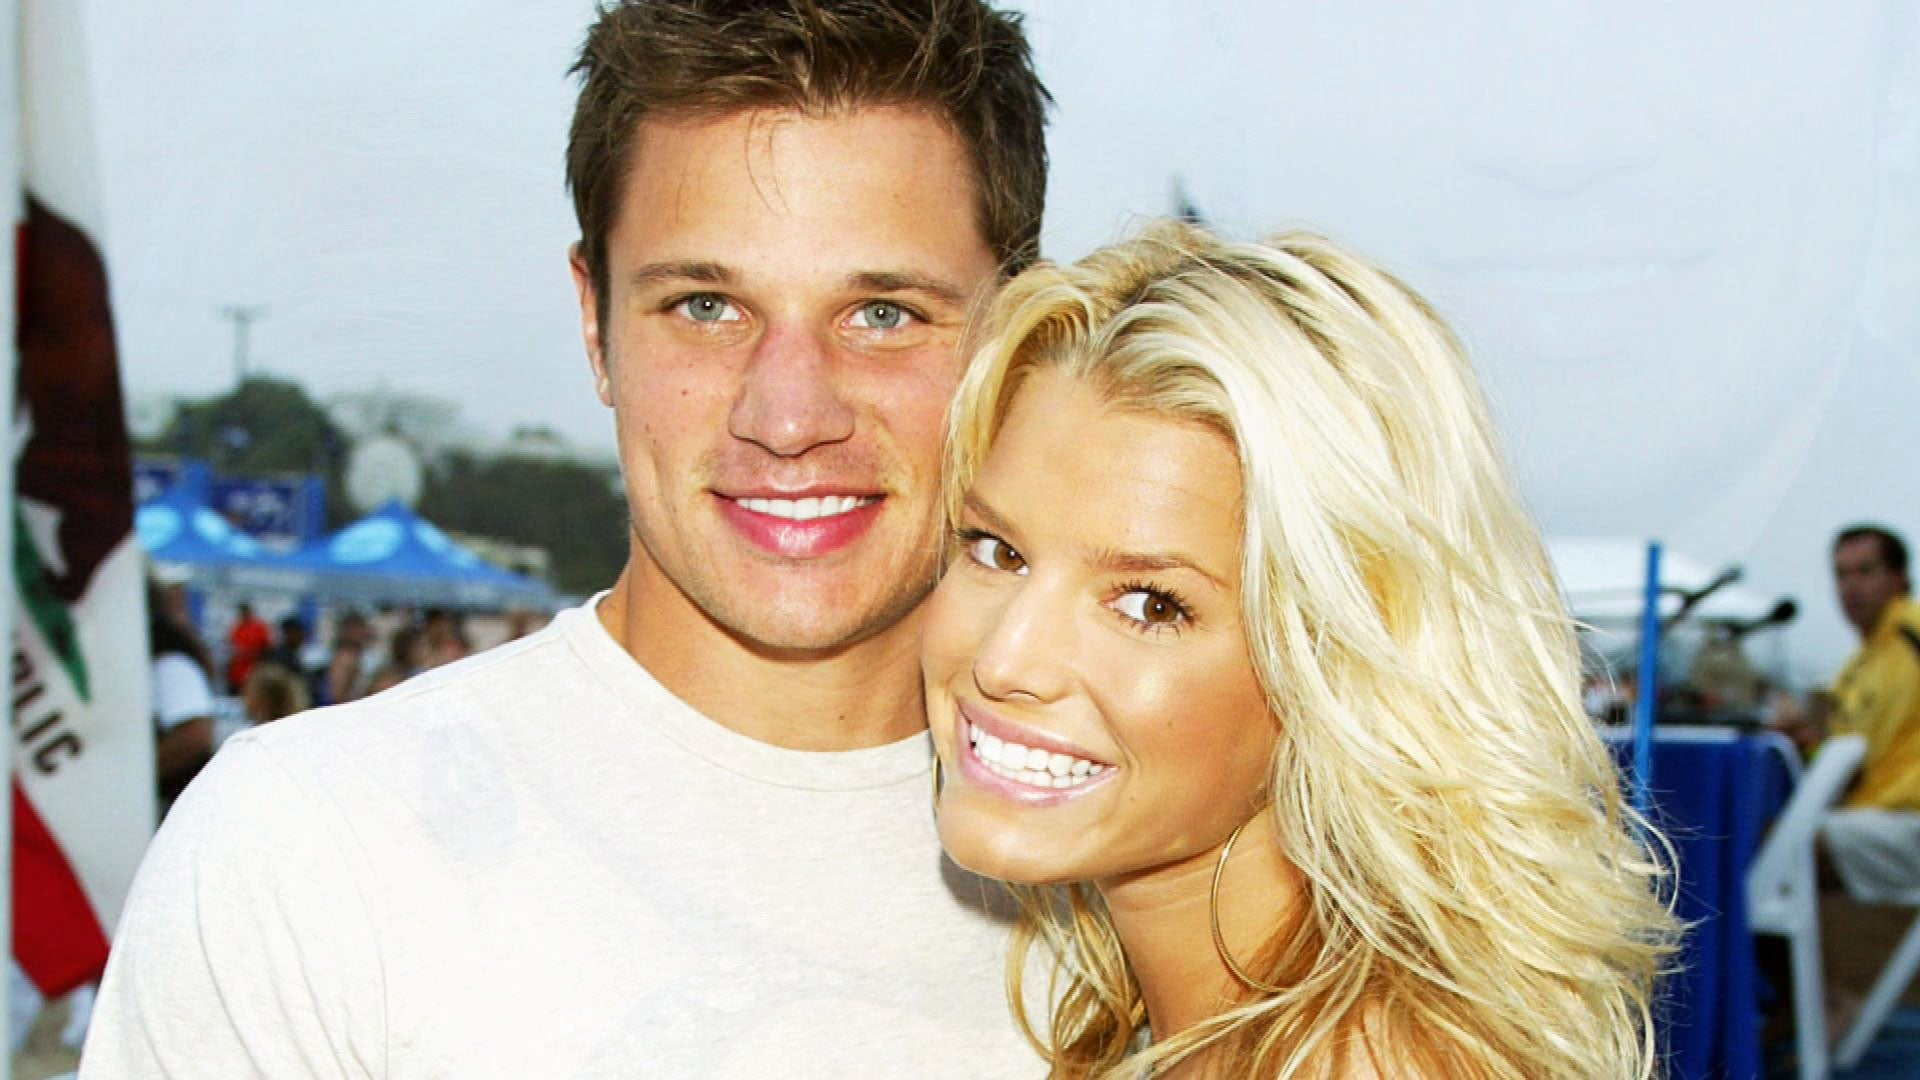 Jessica Simpson Reveals She Kissed Justin Timberlake After Nick Lachey Divorce